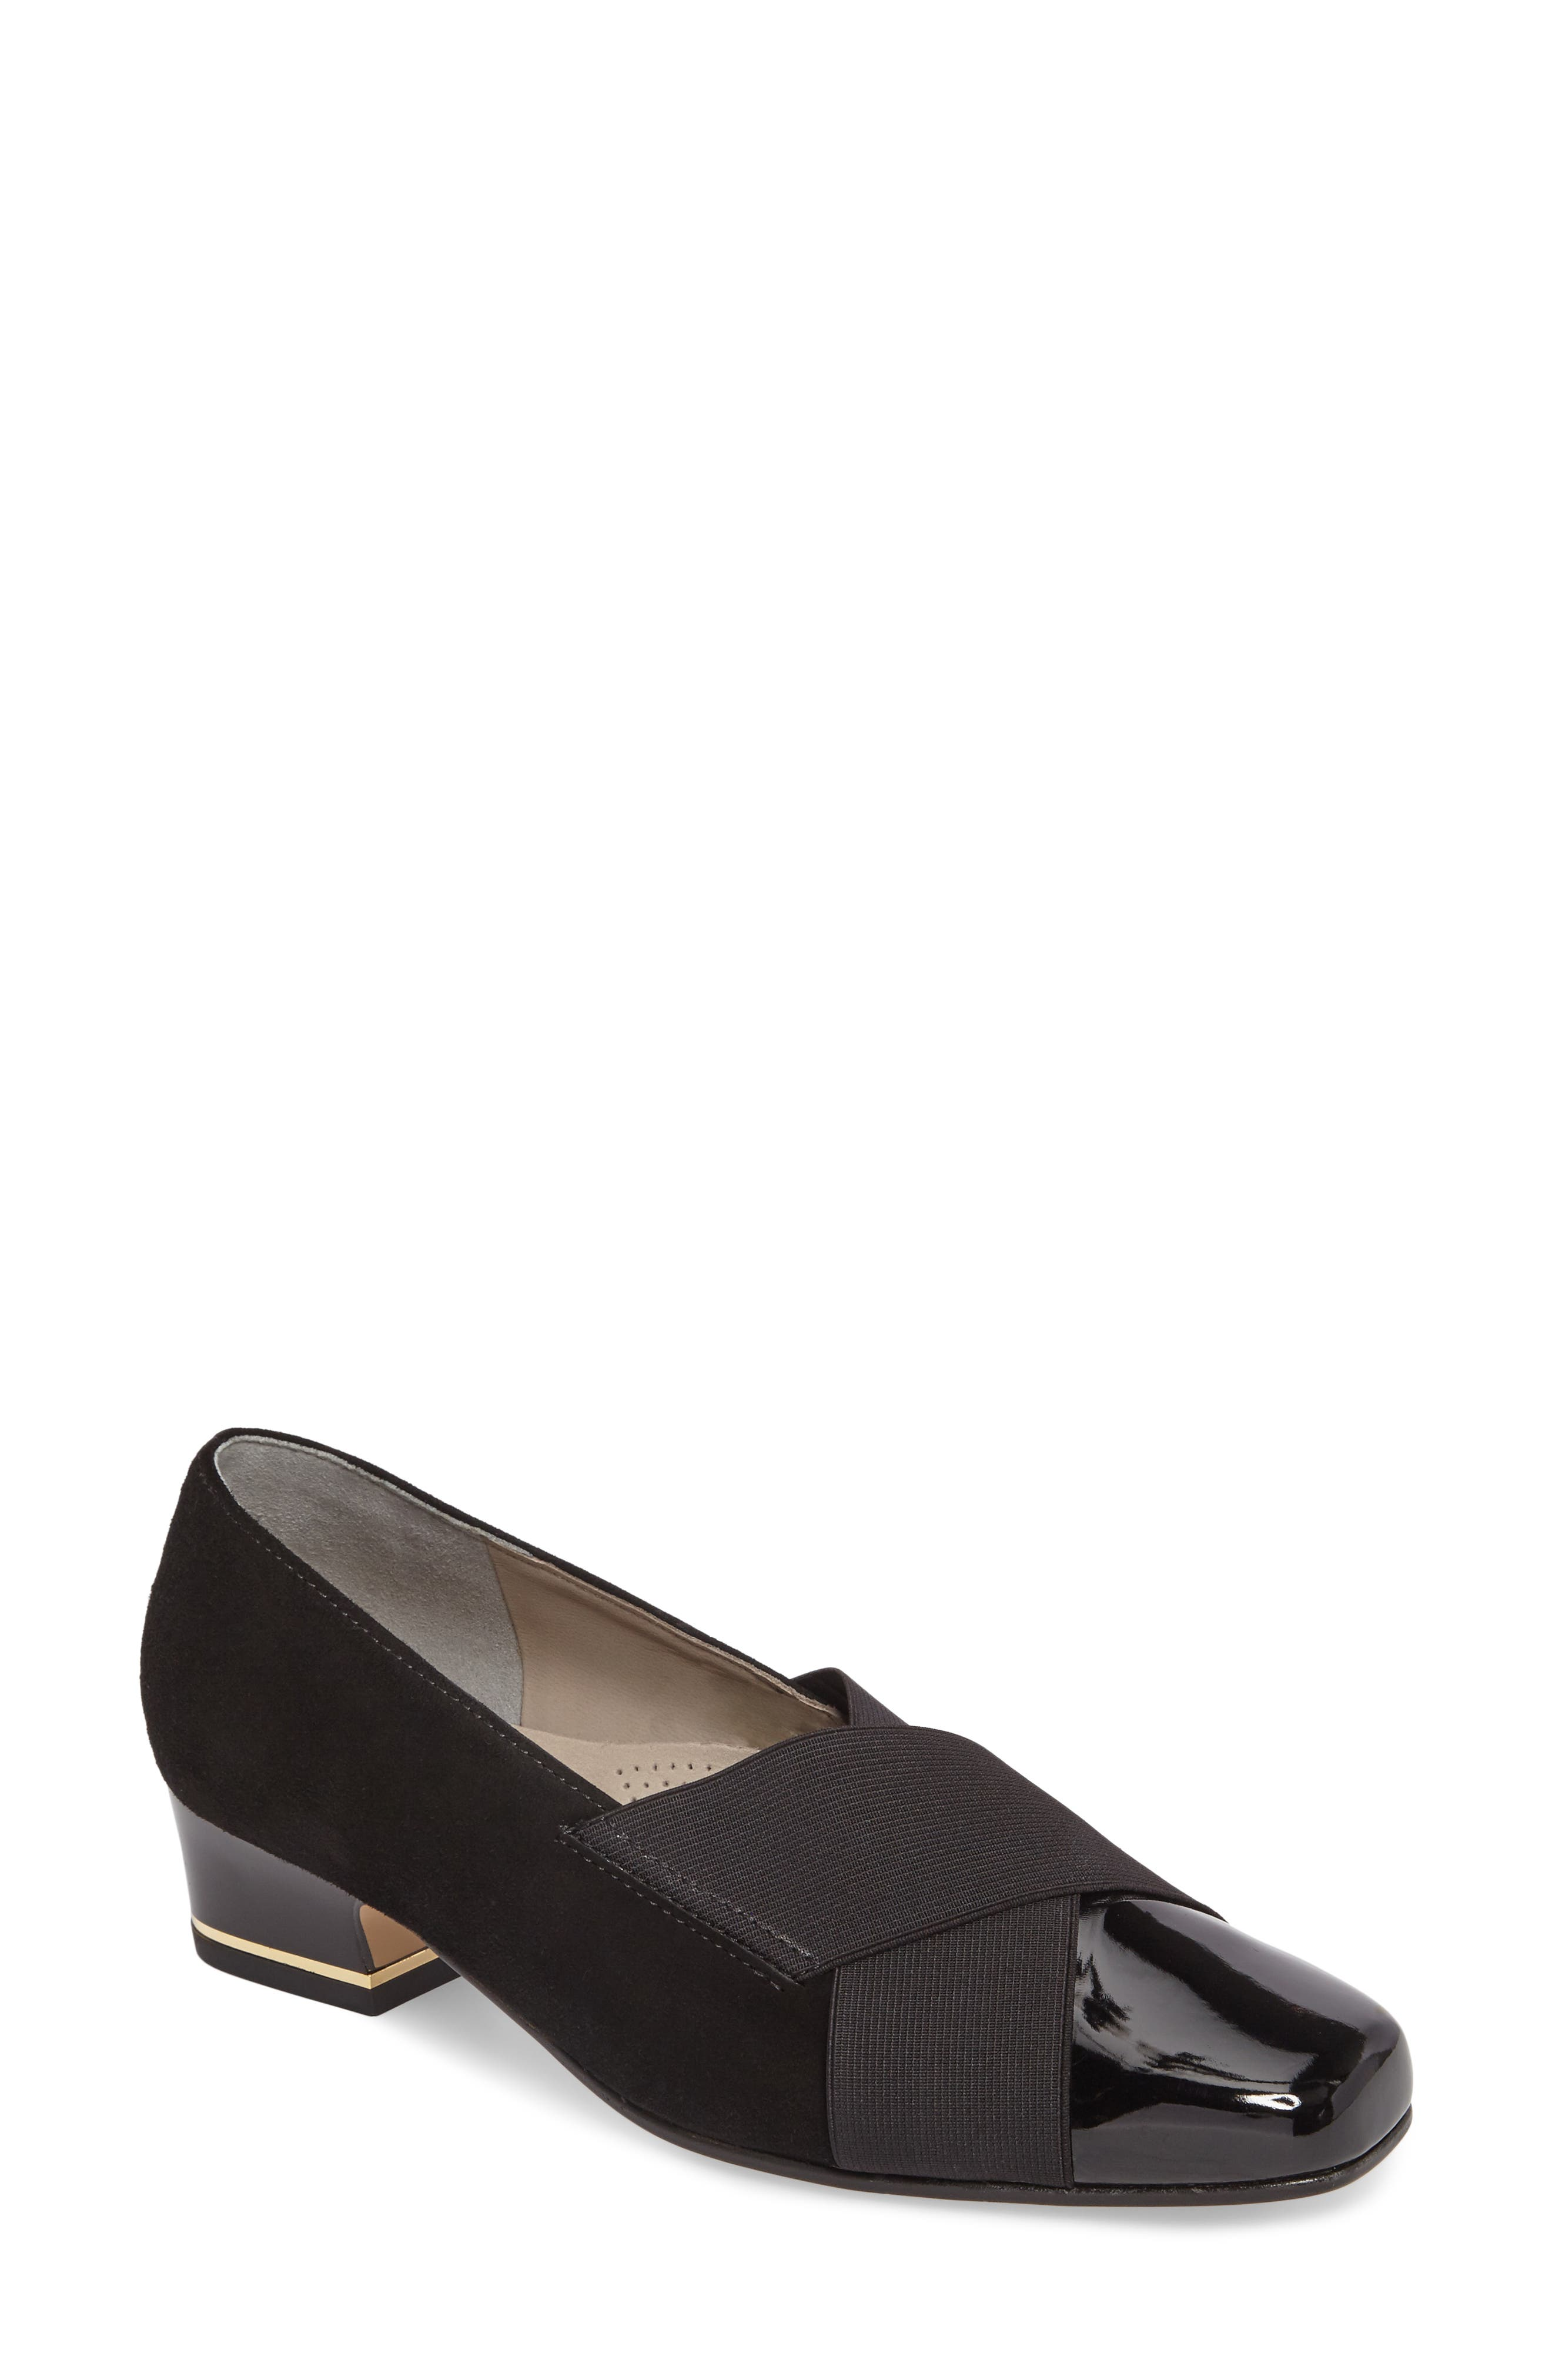 Gina Loafer Pump,                             Main thumbnail 1, color,                             BLACK LEATHER